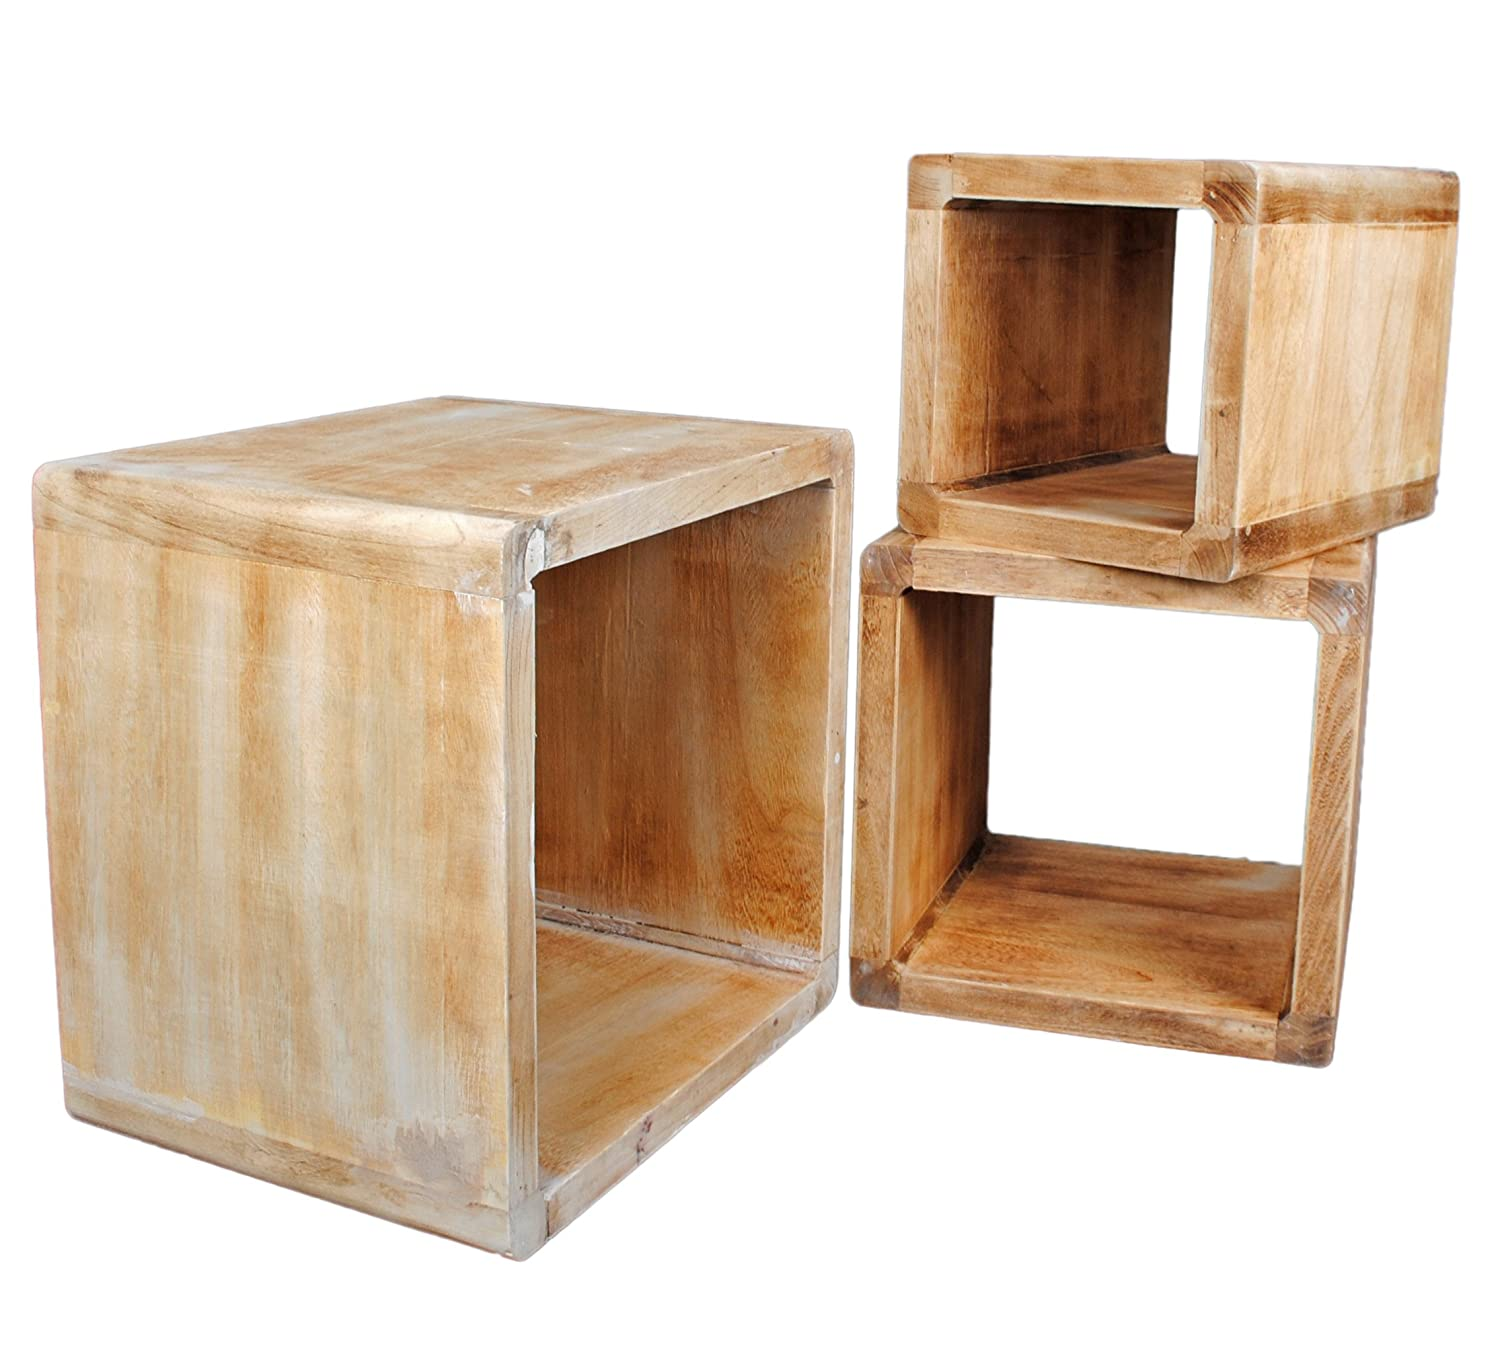 Top lot de cube design table de chevet tagre du salon for Prix maison en bois massif